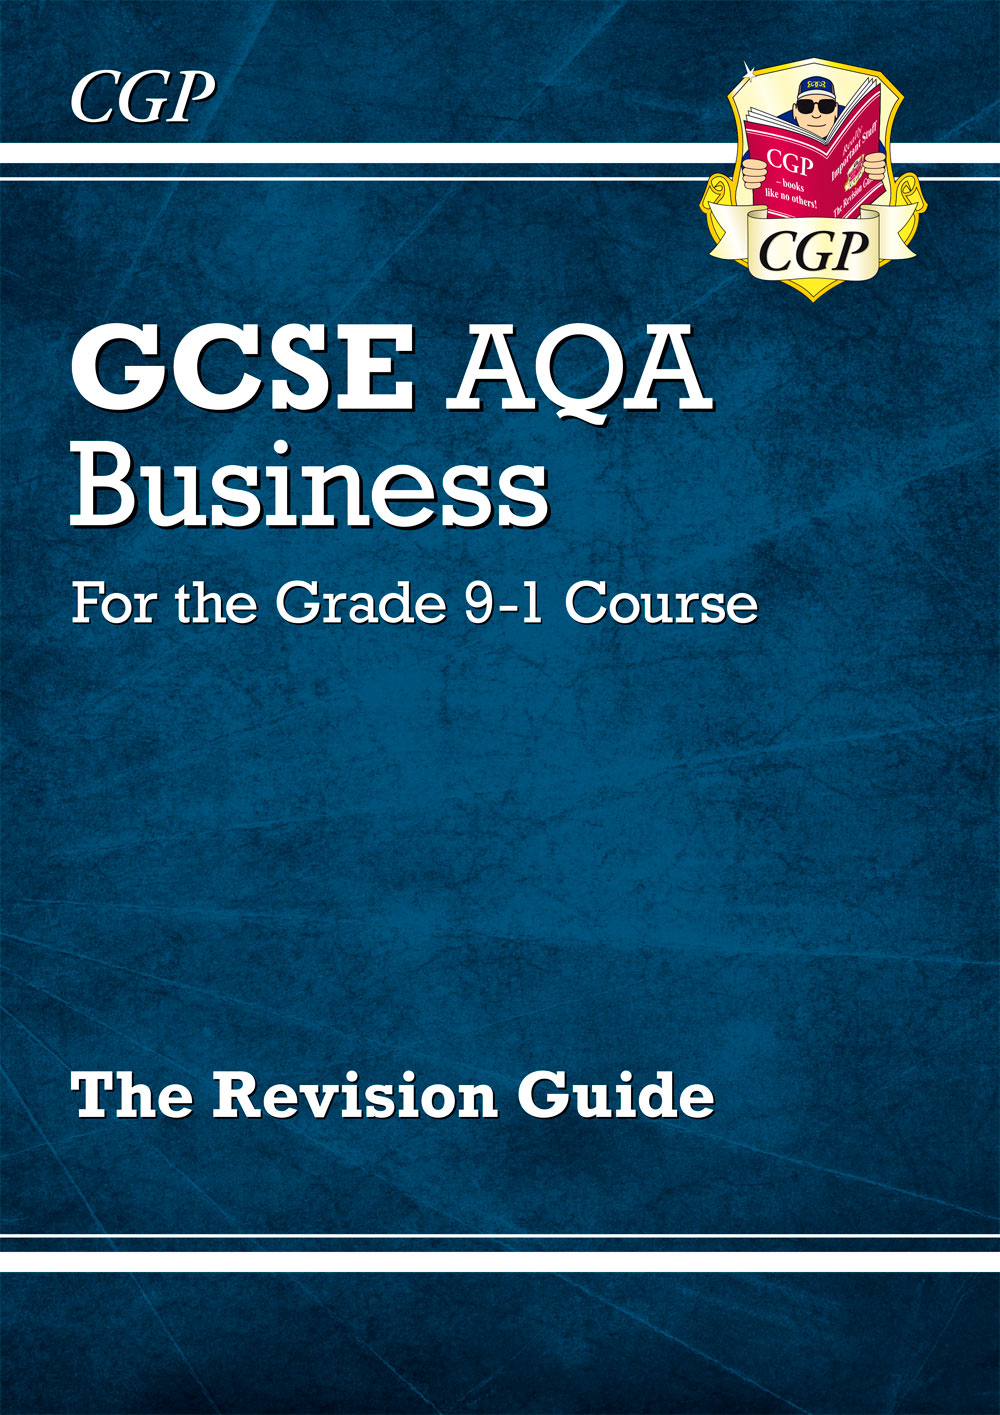 BUAR43 - GCSE Business AQA Revision Guide - for the Grade 9-1 Course